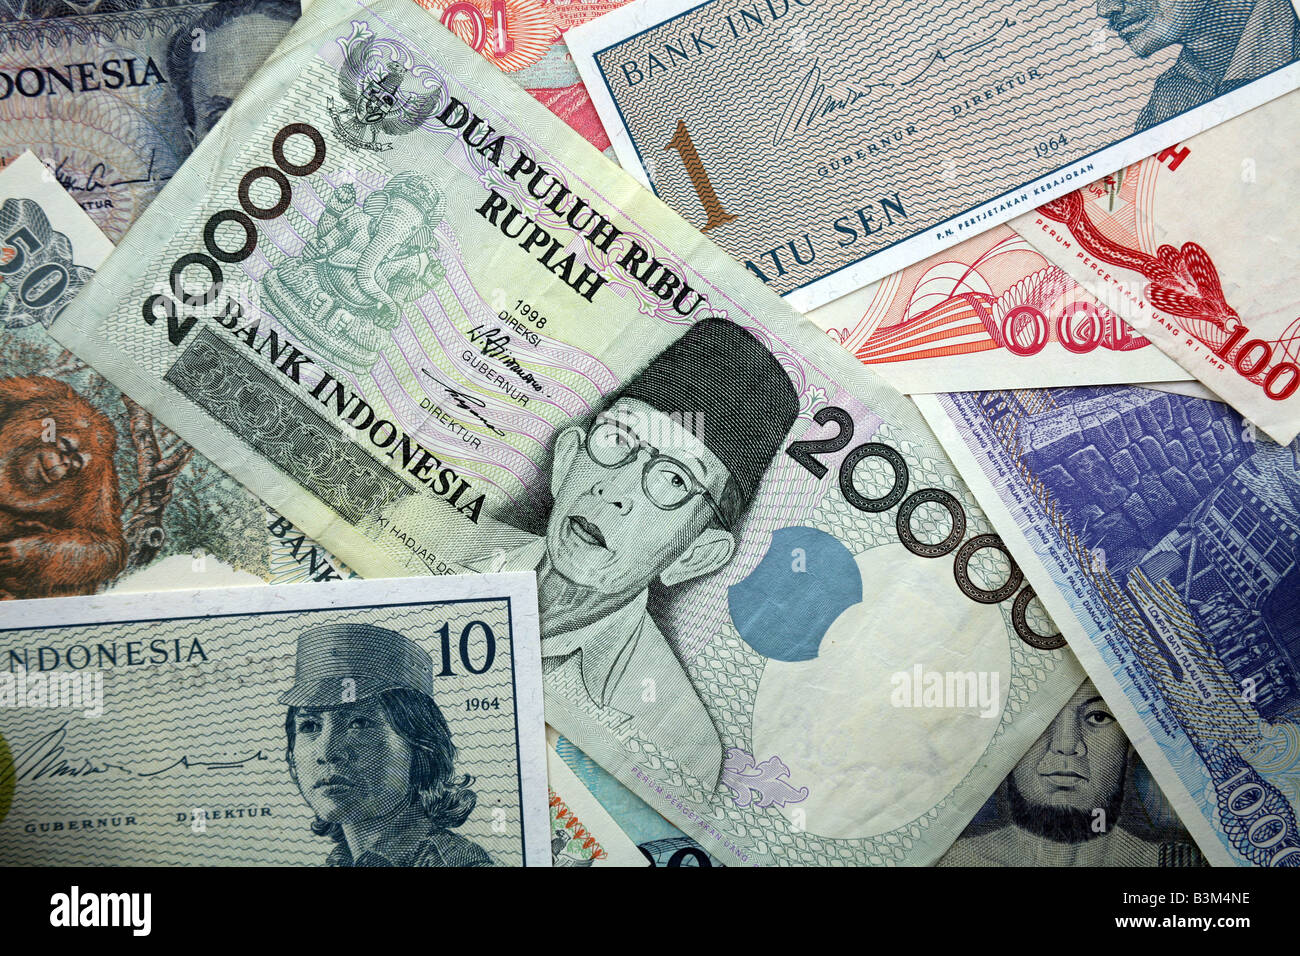 Rupiah Currency Bank notes from Indonesia Stock Photo